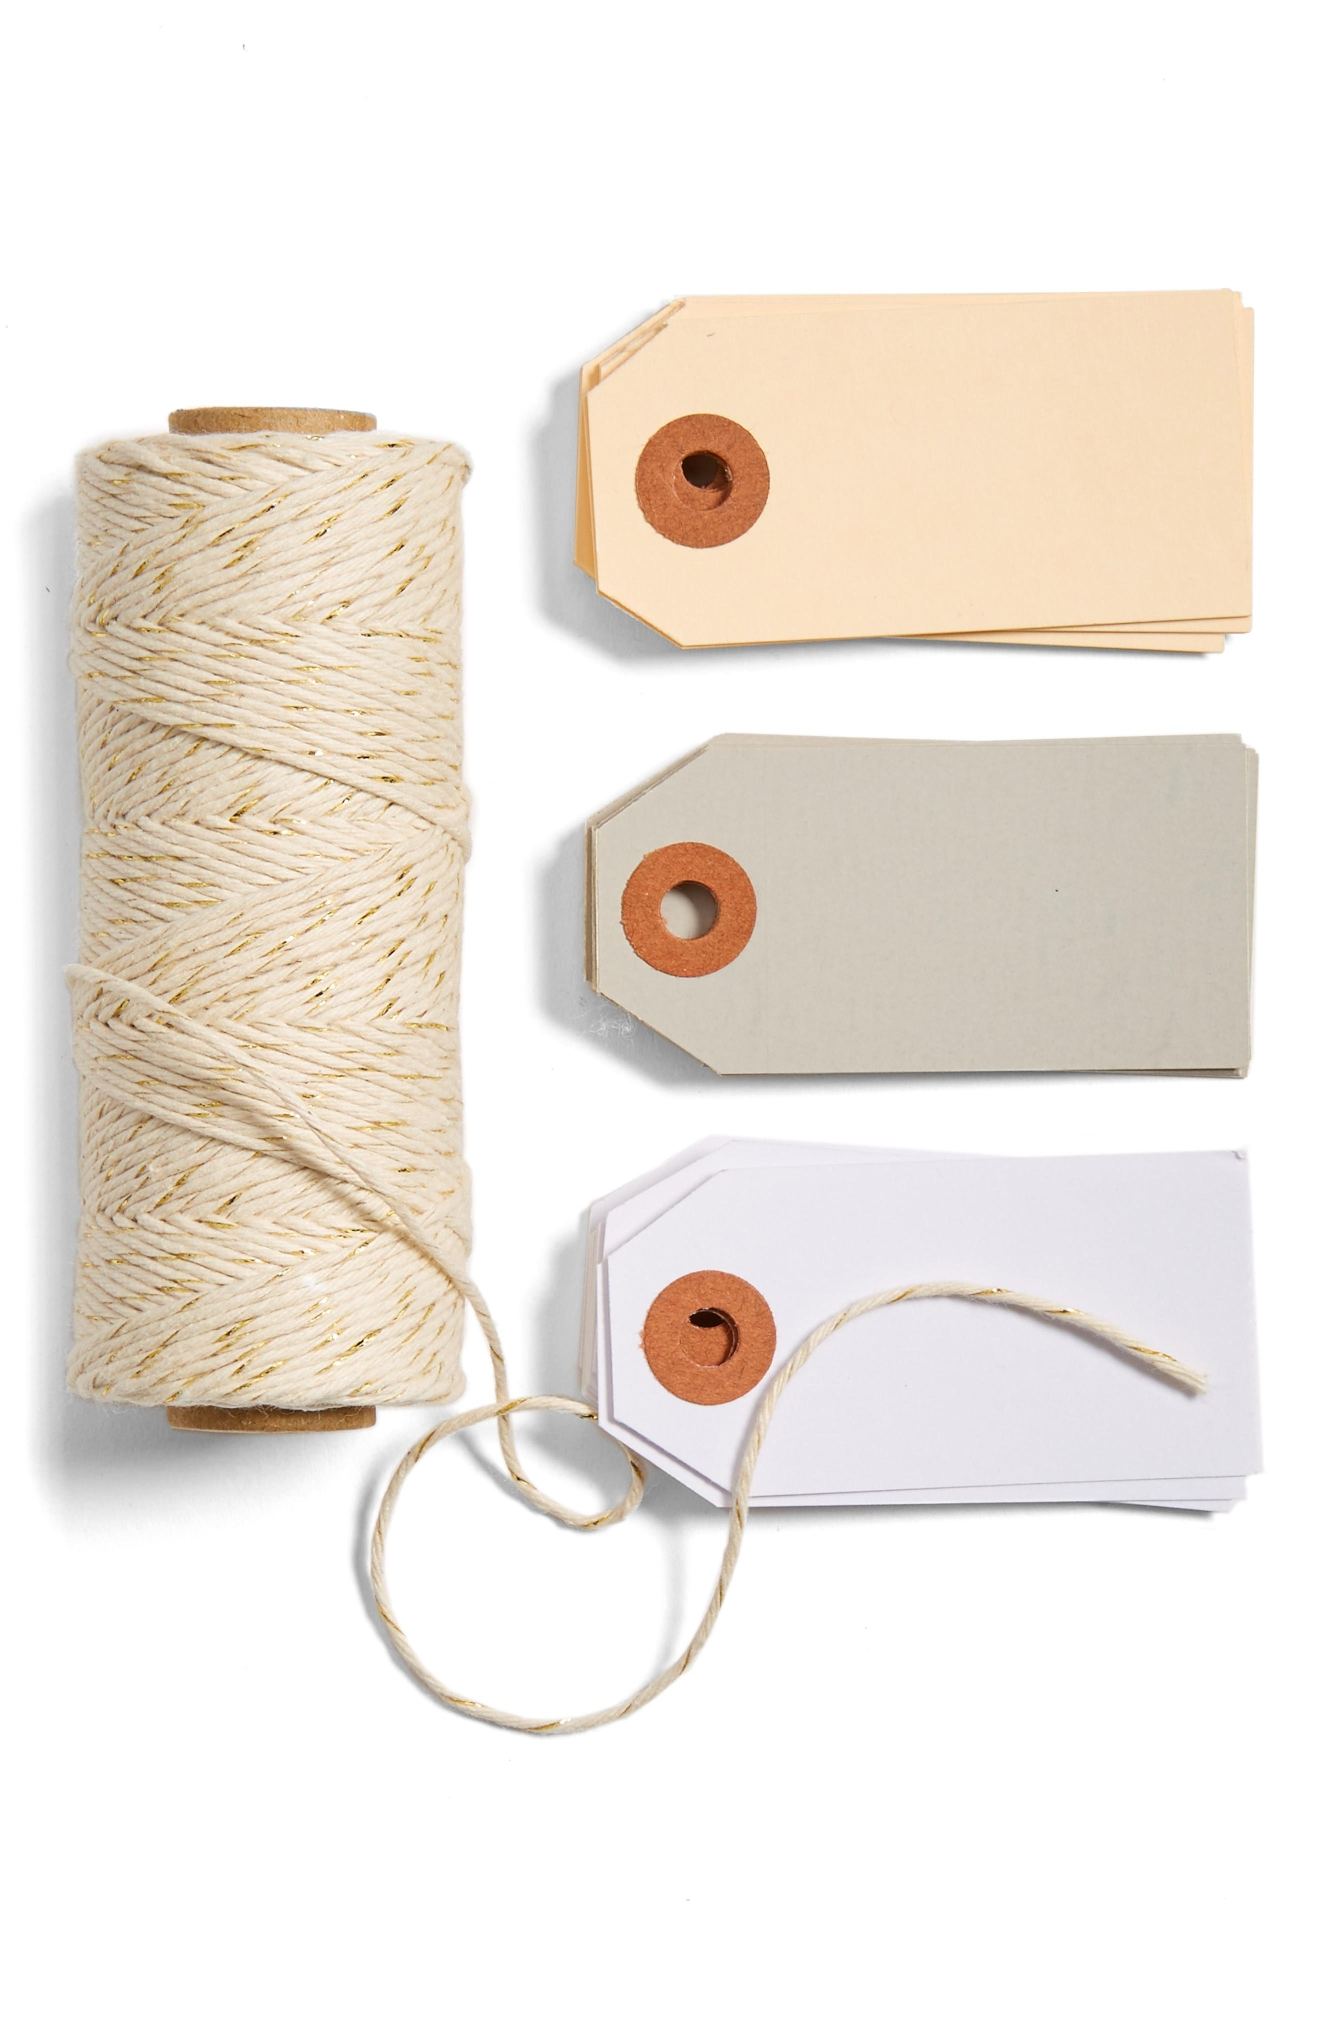 KNOT & BOW TAG  TWINE BOXES, Gold-Neutral - $20. Buy at shop.nordstrom.com/c/pop-in-olivia-kim (Image: Nordstrom)